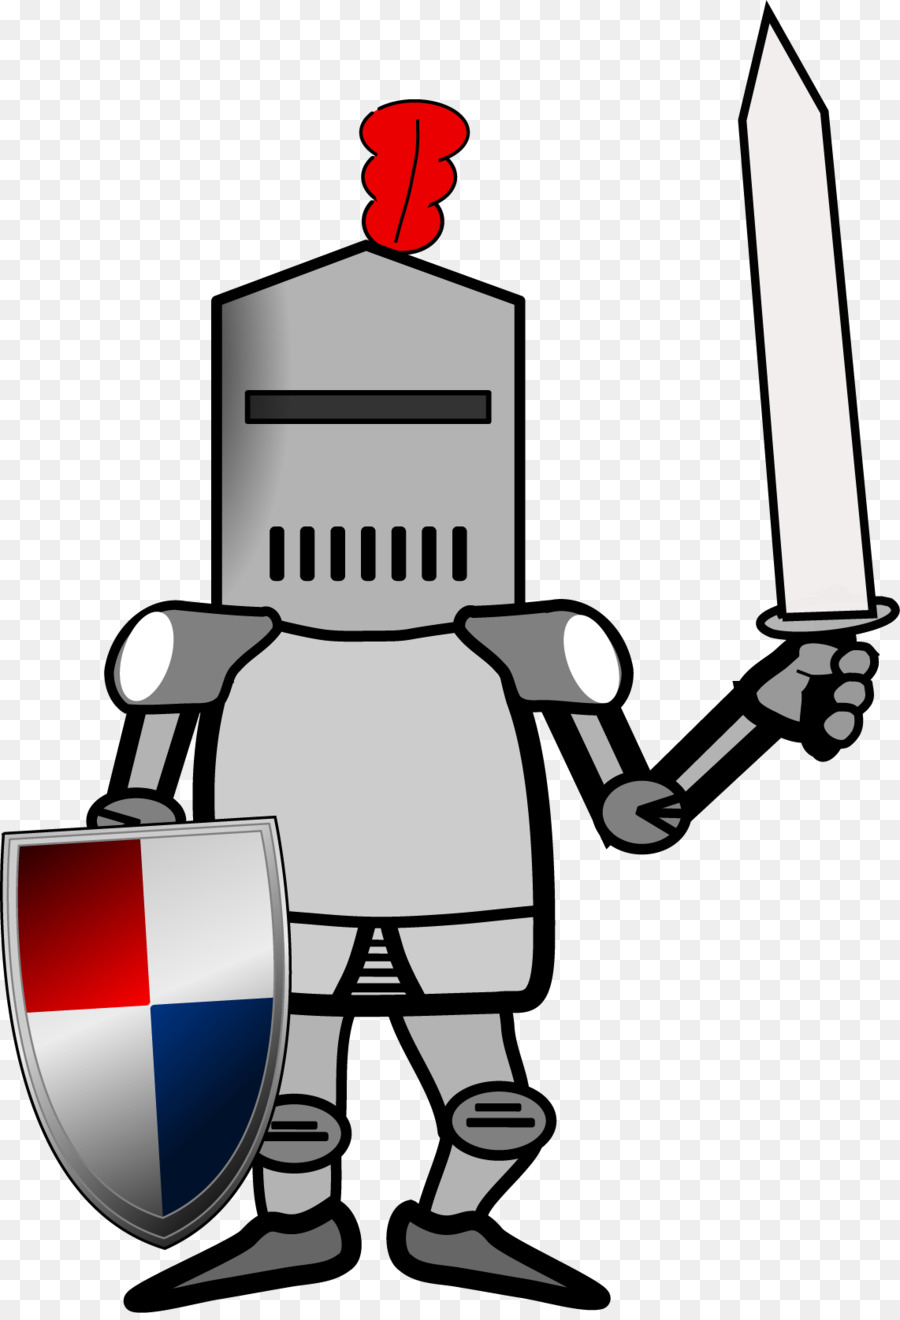 middle ages knight plate armour clip art vector warrior png rh kisspng com knights clip art free knight clipart images